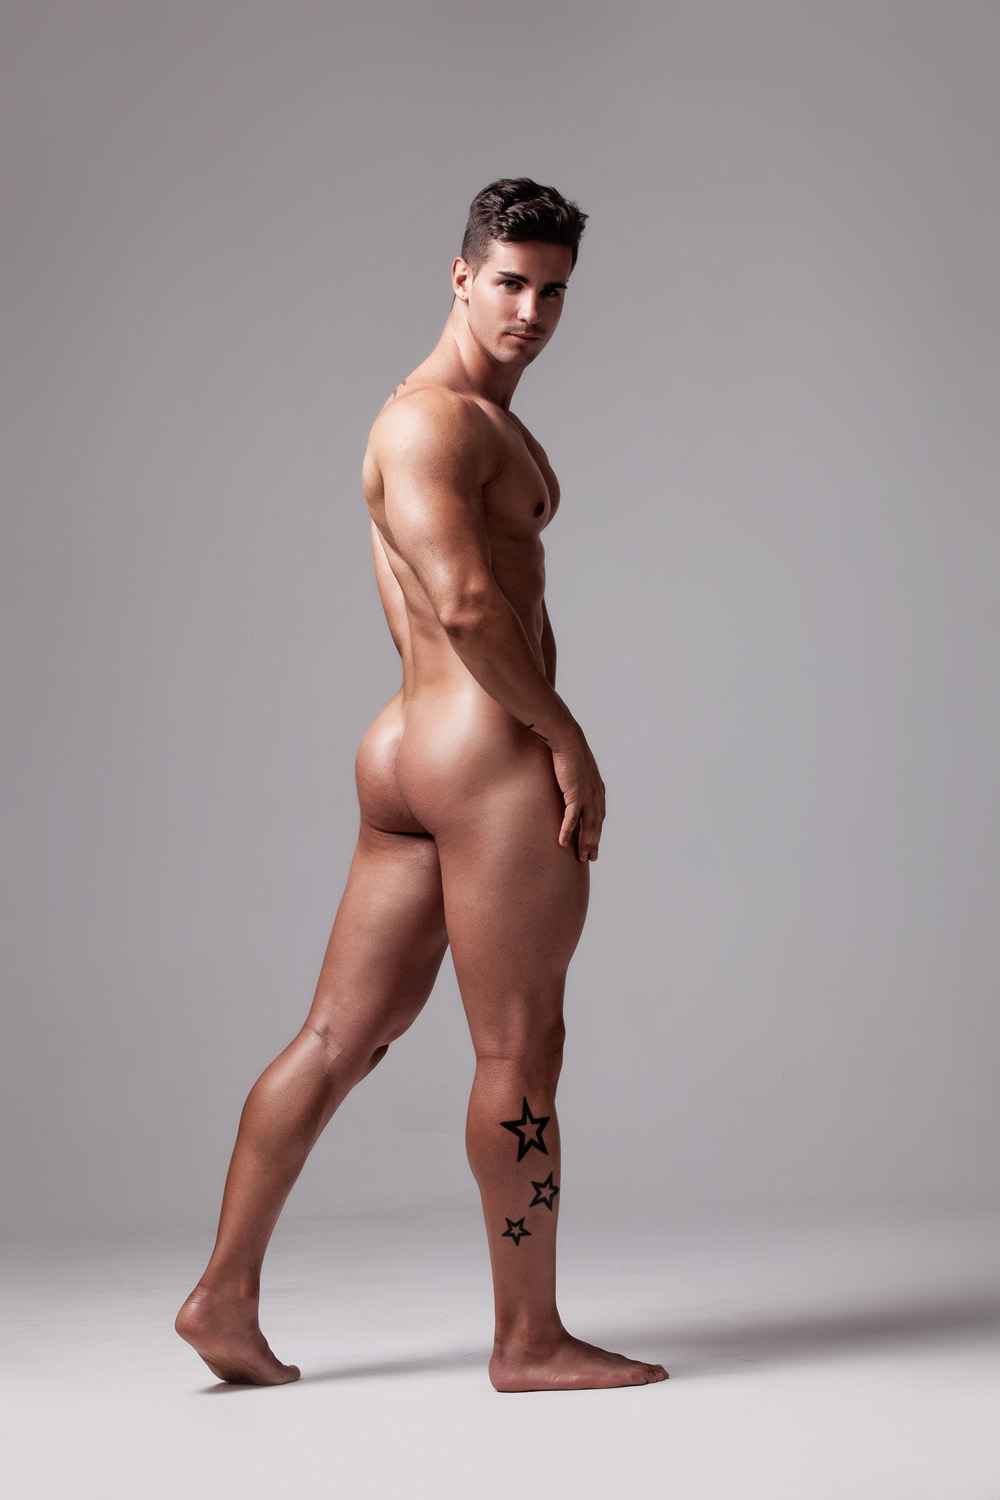 Spanish Provocateur Alex Bueno Bares All For Fashionably -7147